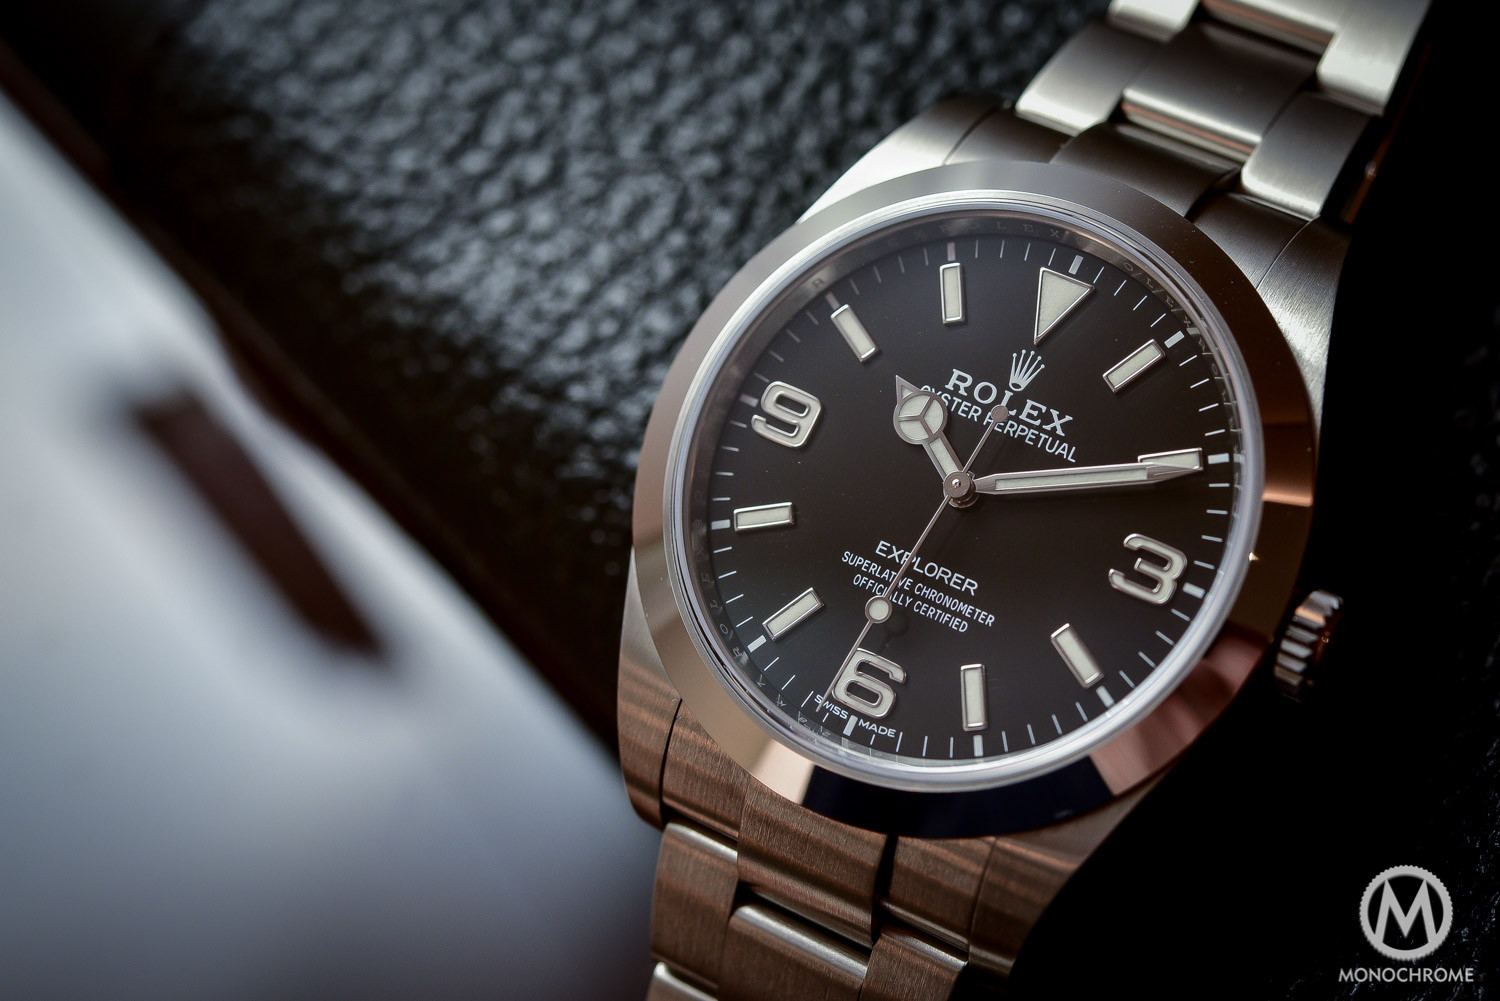 Rolex Explorer 214270 Baselworld 2016 - Long hands - 6